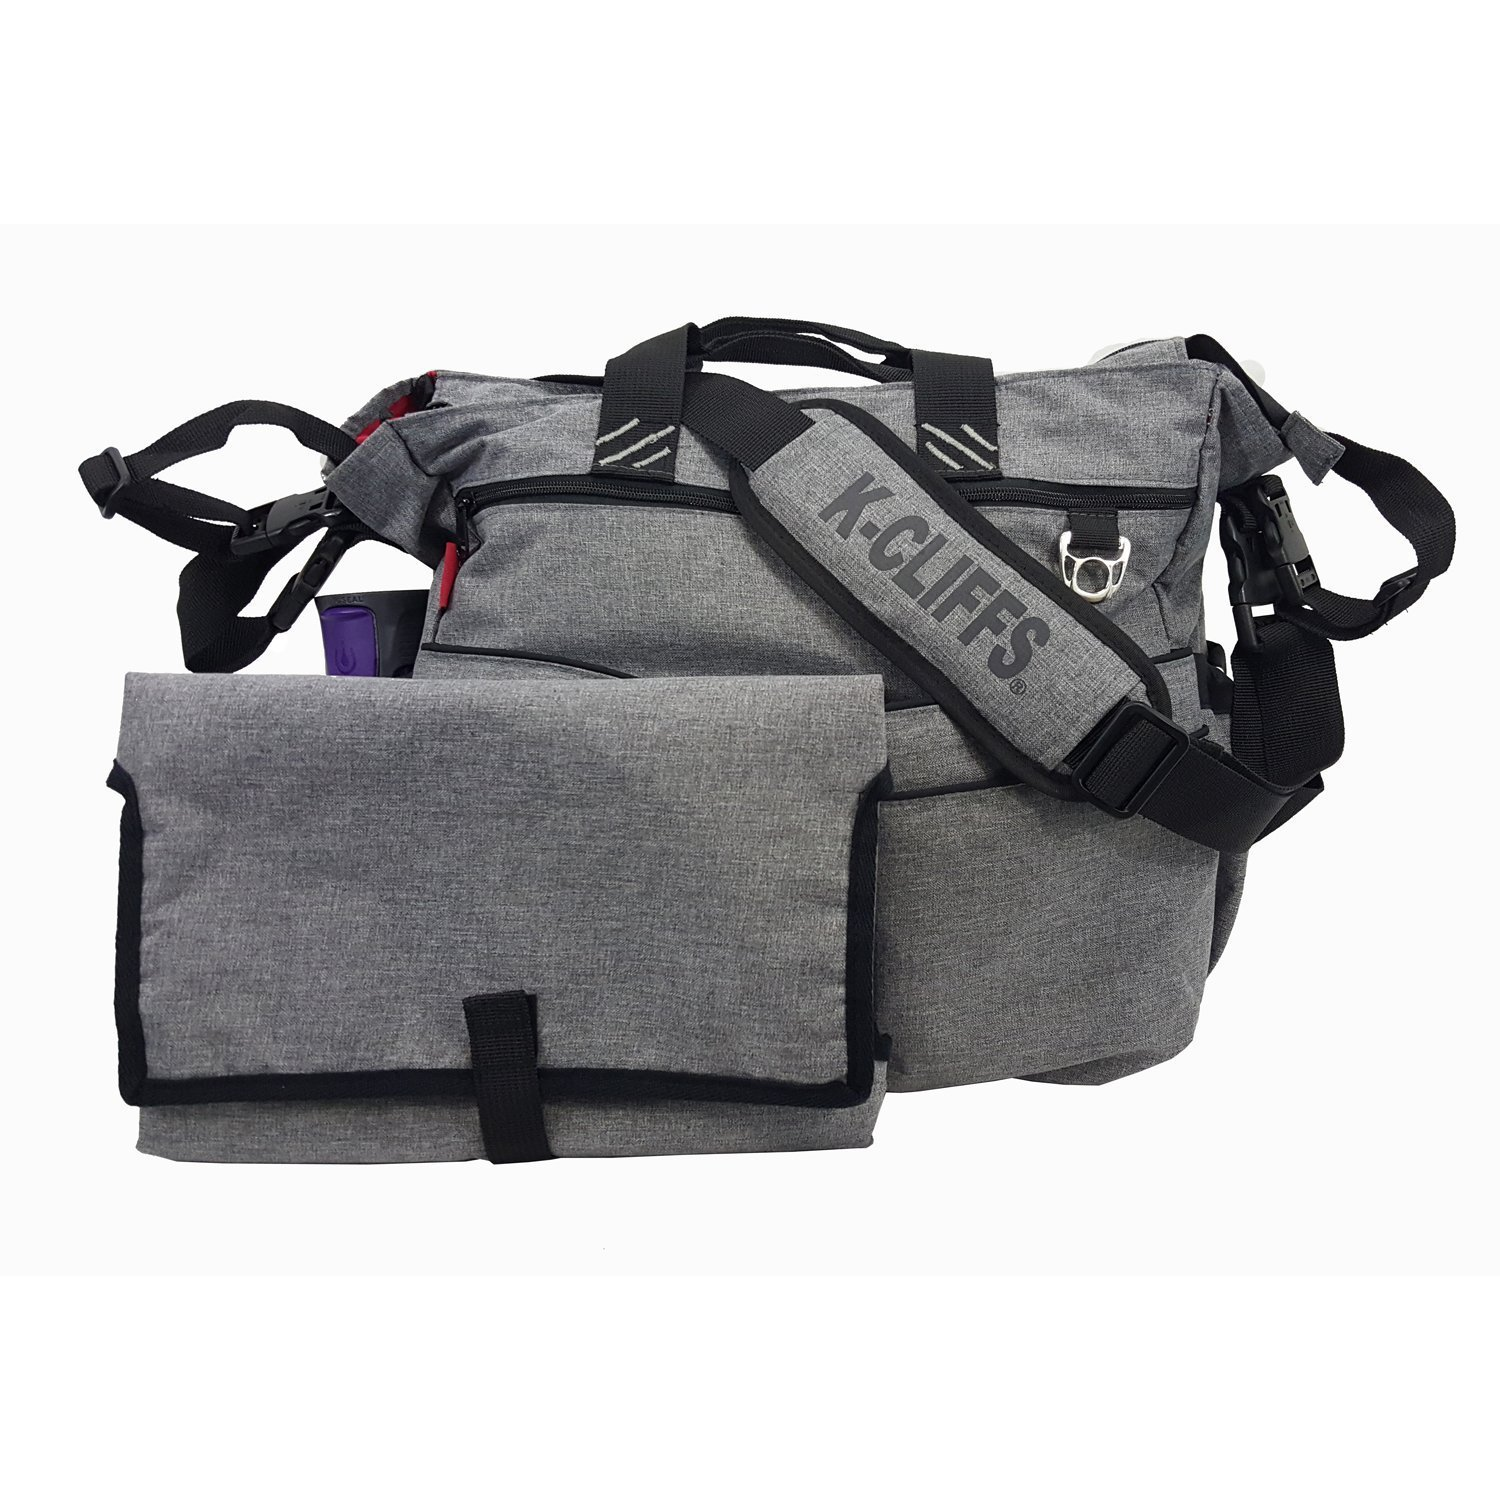 Fashion Diaper Bag Quality Baby Diaper Organizer Tote Bag Mommy Handbag Daddy's Messenger Bag With Padded Changing Mat Gray K-Cliffs RT105 Grey